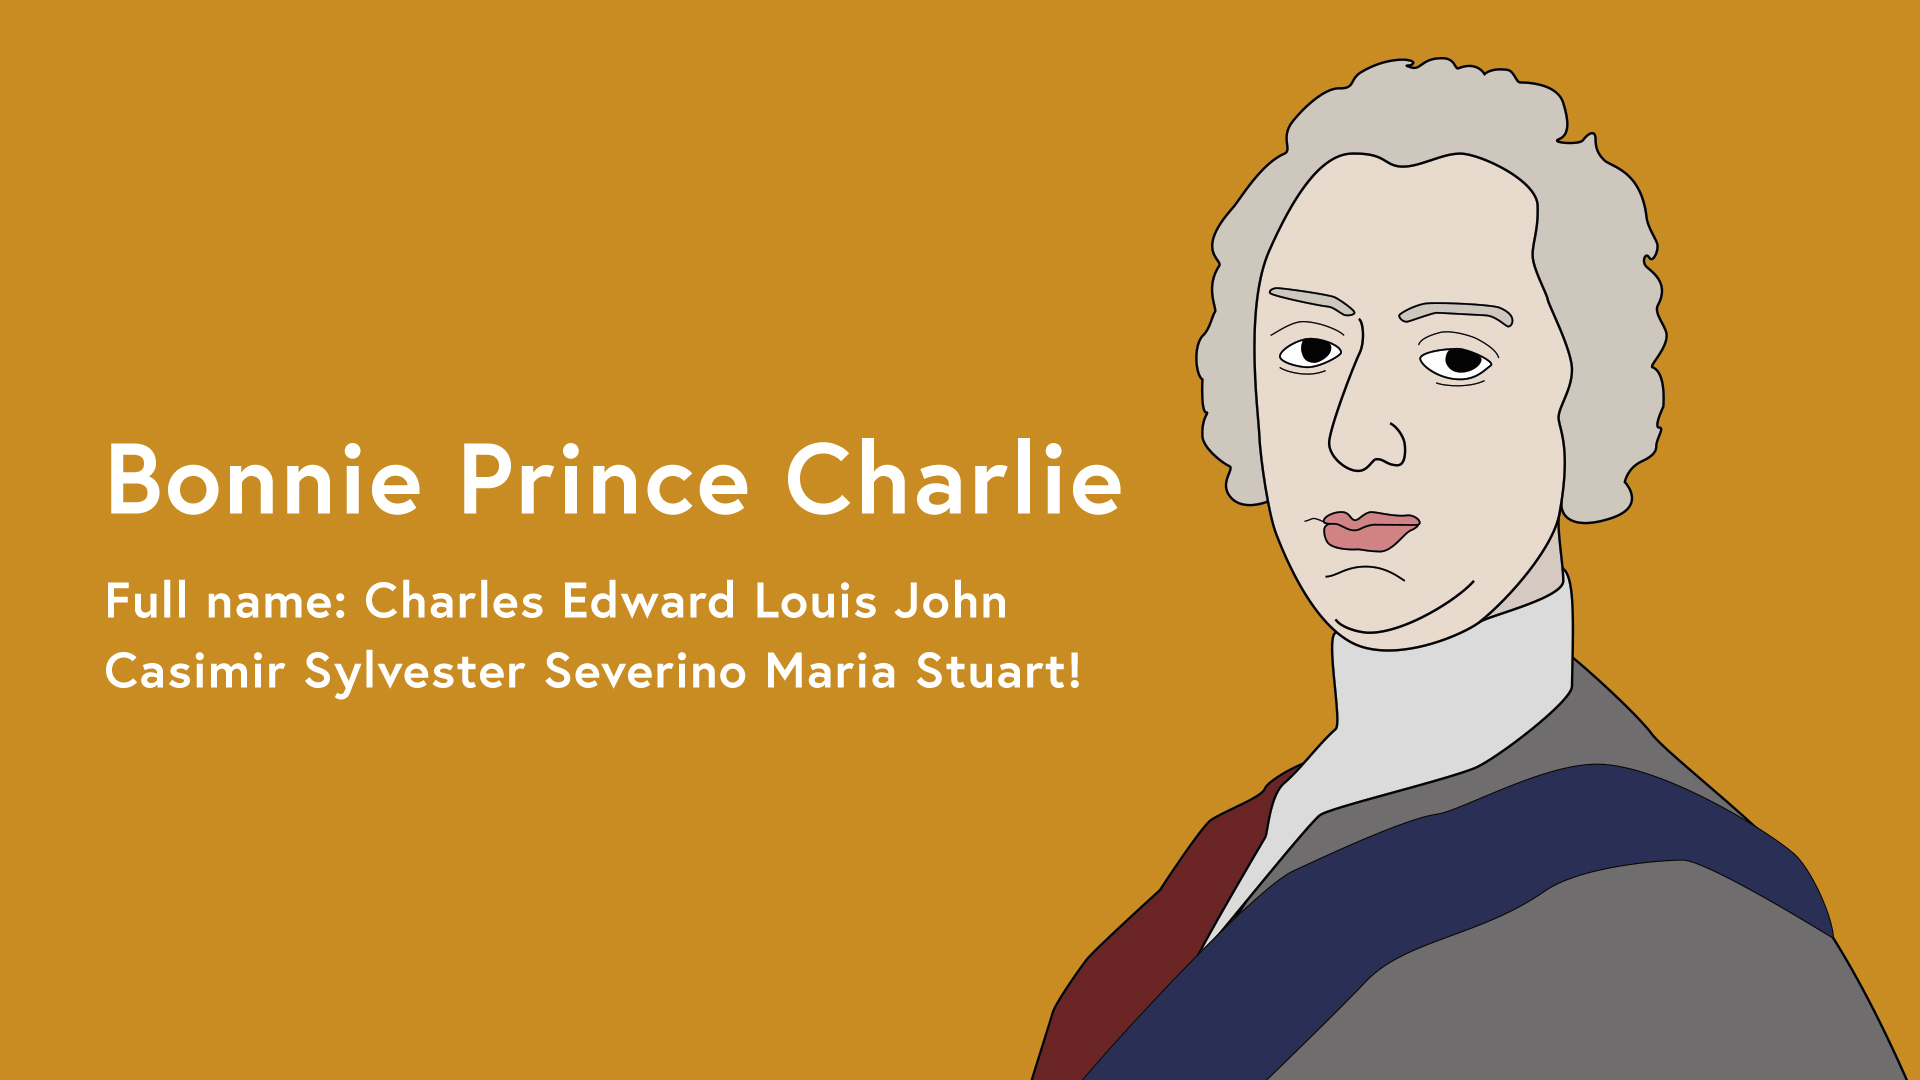 Bonnie Prince Charlie Illustration